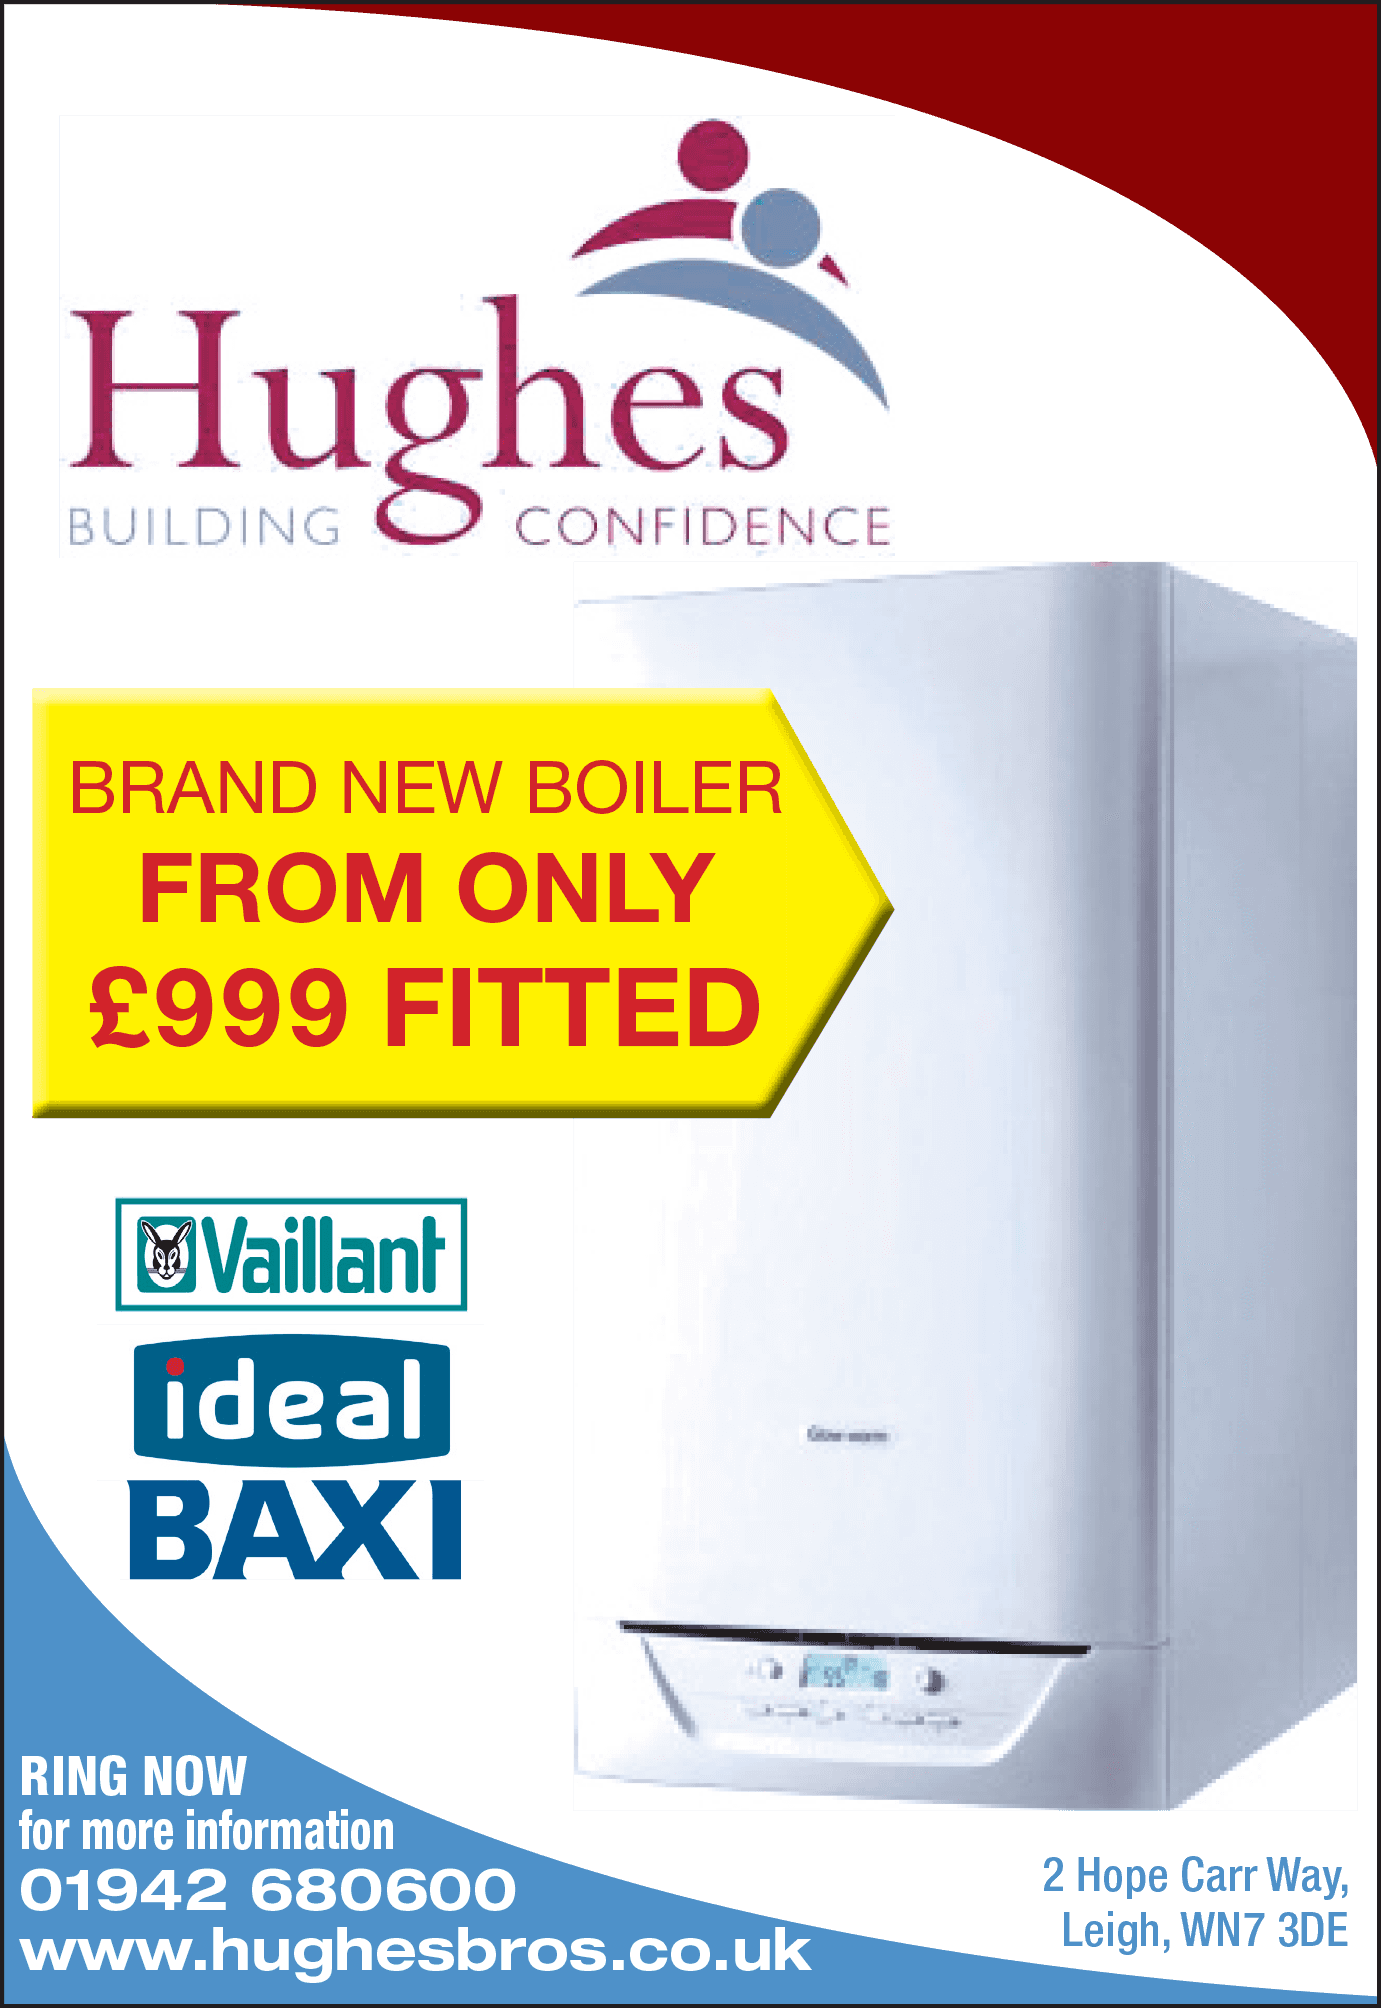 Hughes Brand New Boiler at reasonable price